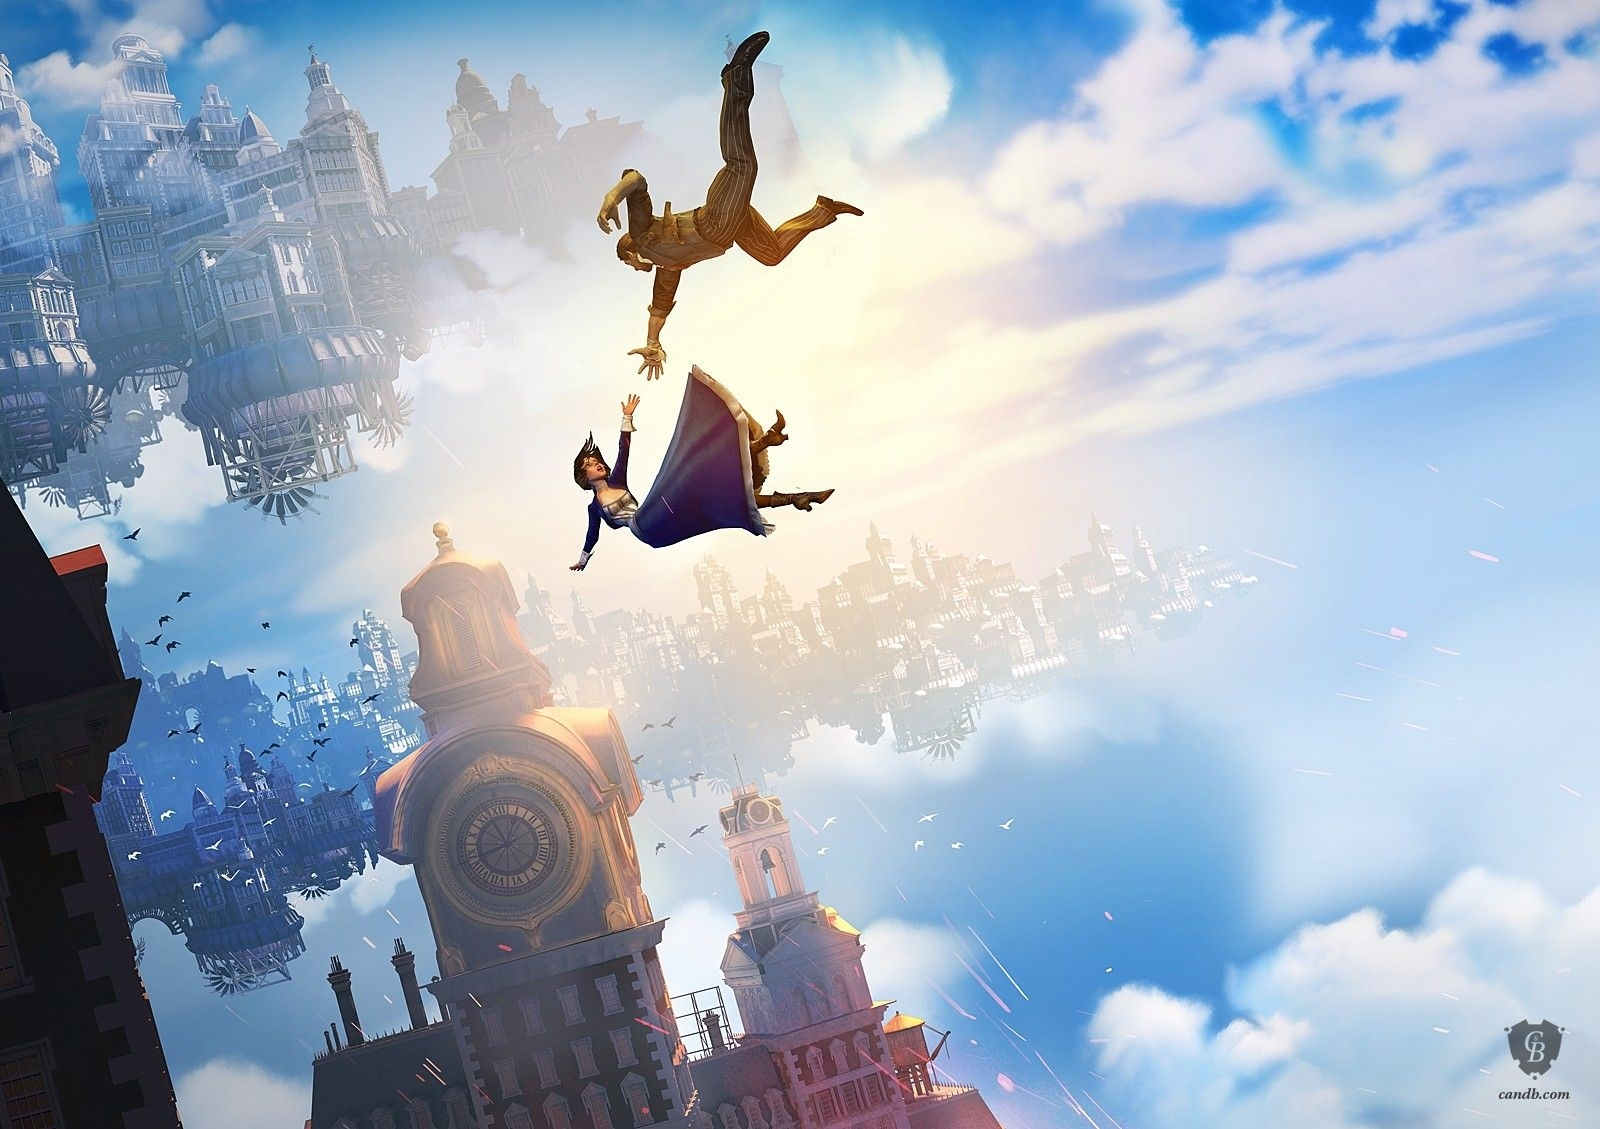 falling - bioshock infinite - falling is part of the official